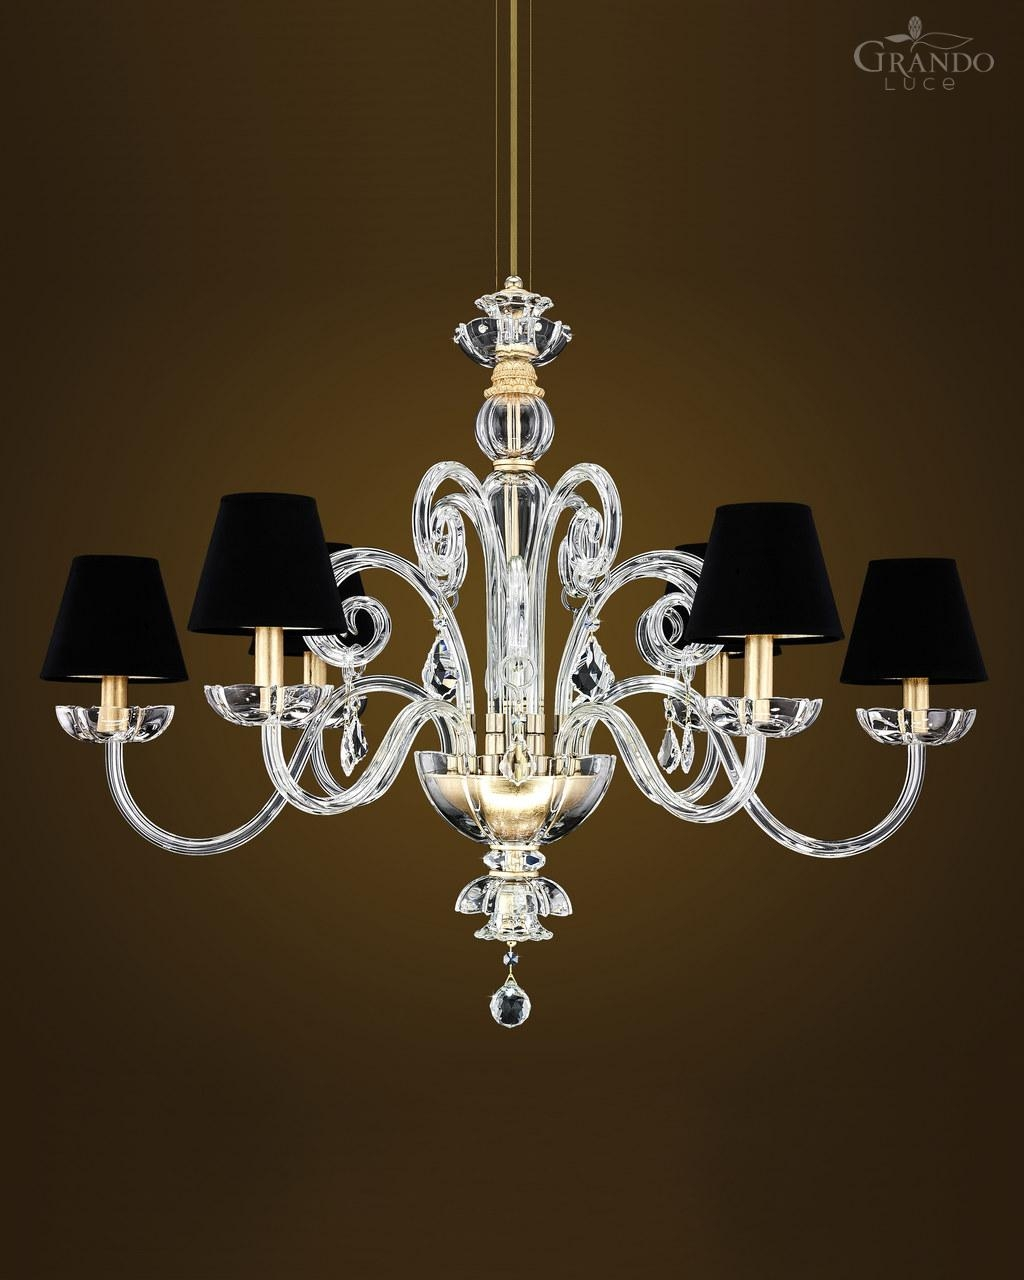 1256 Rl Gold Leaf Crystal Chandelier With Swarovski Elements Inside Crystal Gold Chandeliers (Image 1 of 25)